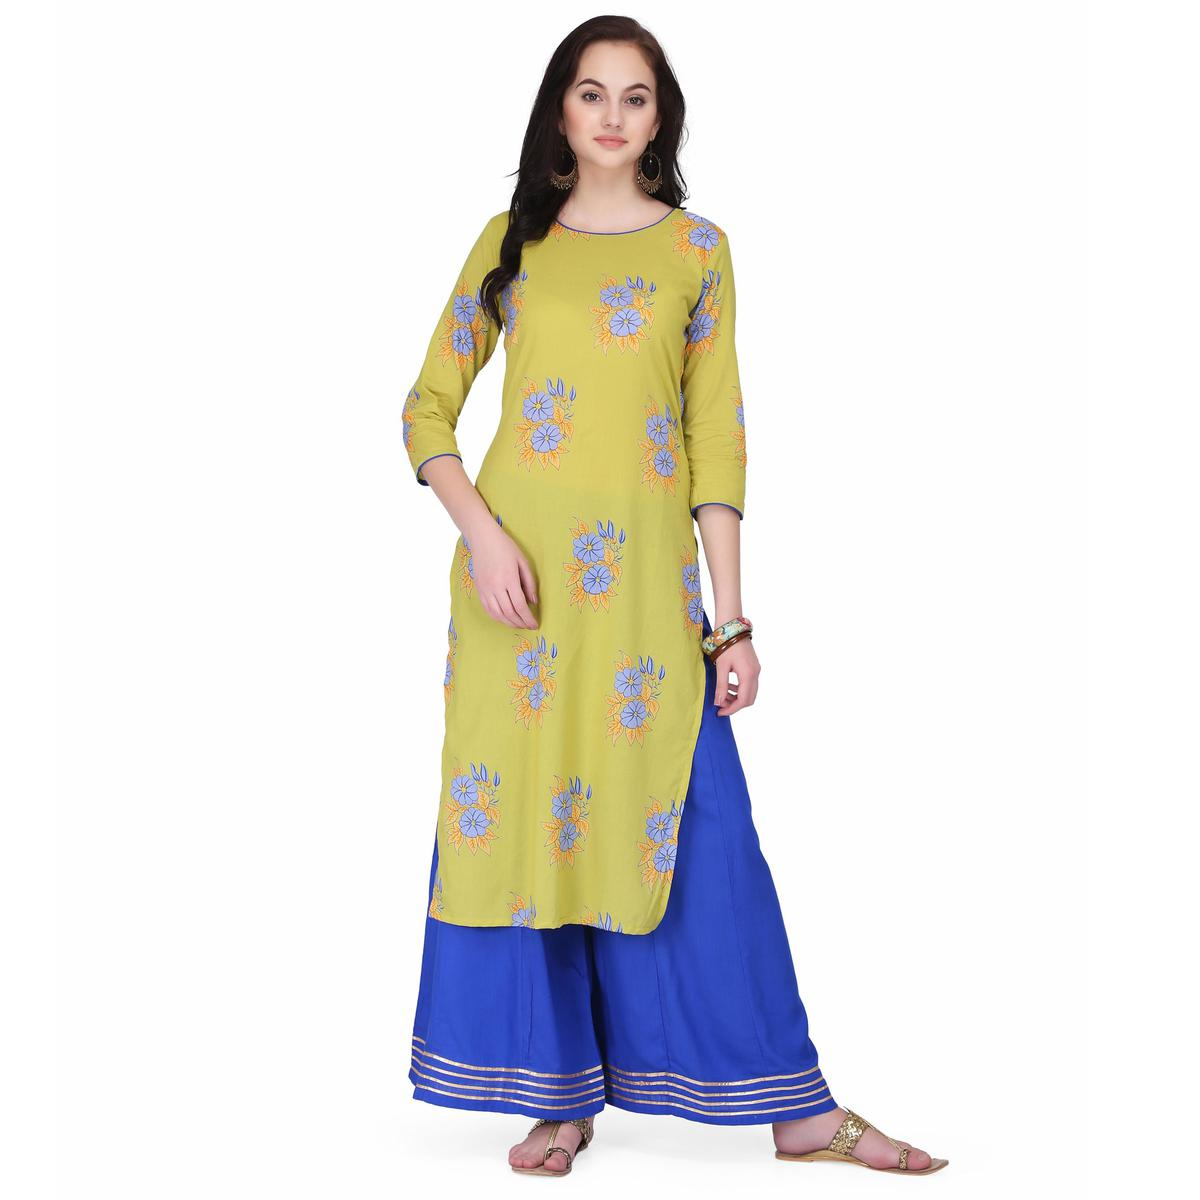 Jazzy Green Colored Casual Wear Floral Printed Cambric Cotton Straight Kurti-Palazzo Set